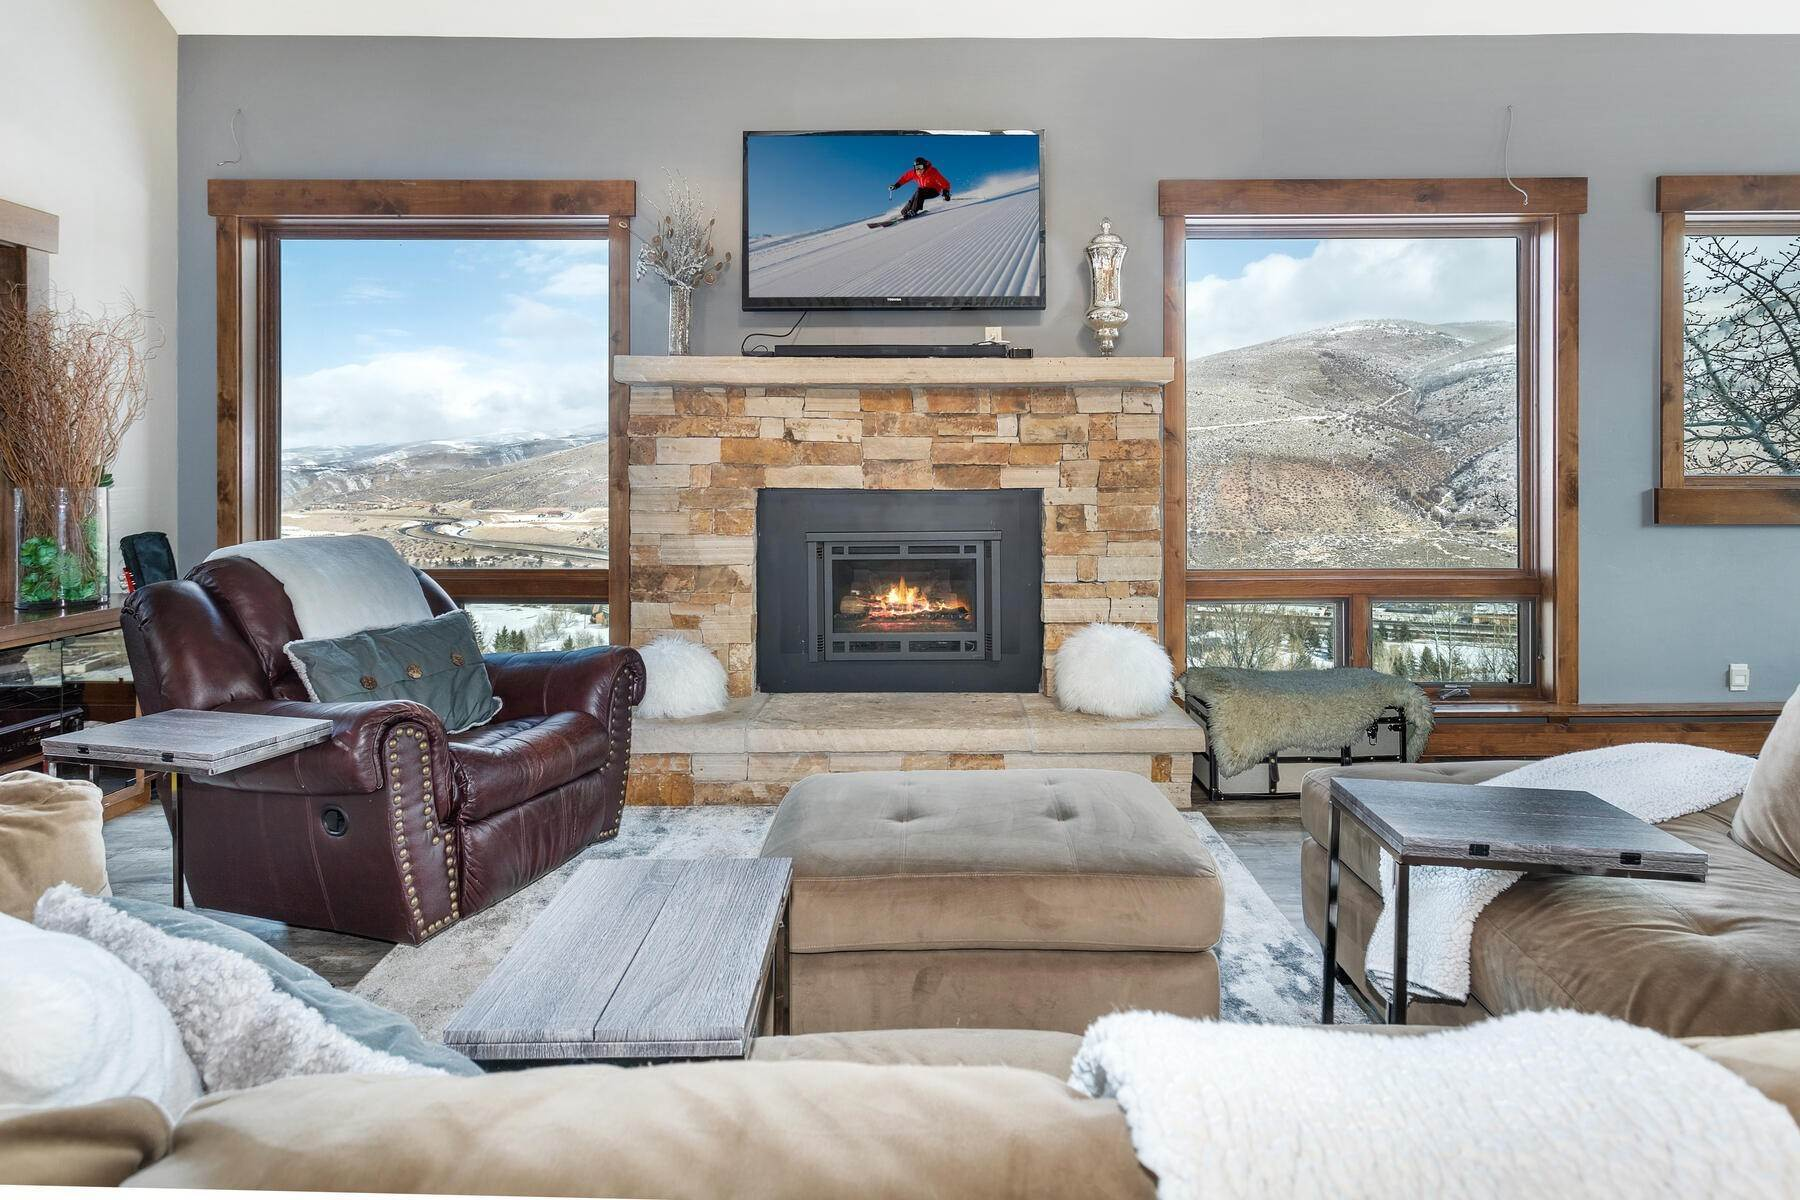 Duplex Homes 为 销售 在 Incredible western views of the Vail valley 946 Eagle Drive #E 雅芳, 科罗拉多州 81620 美国